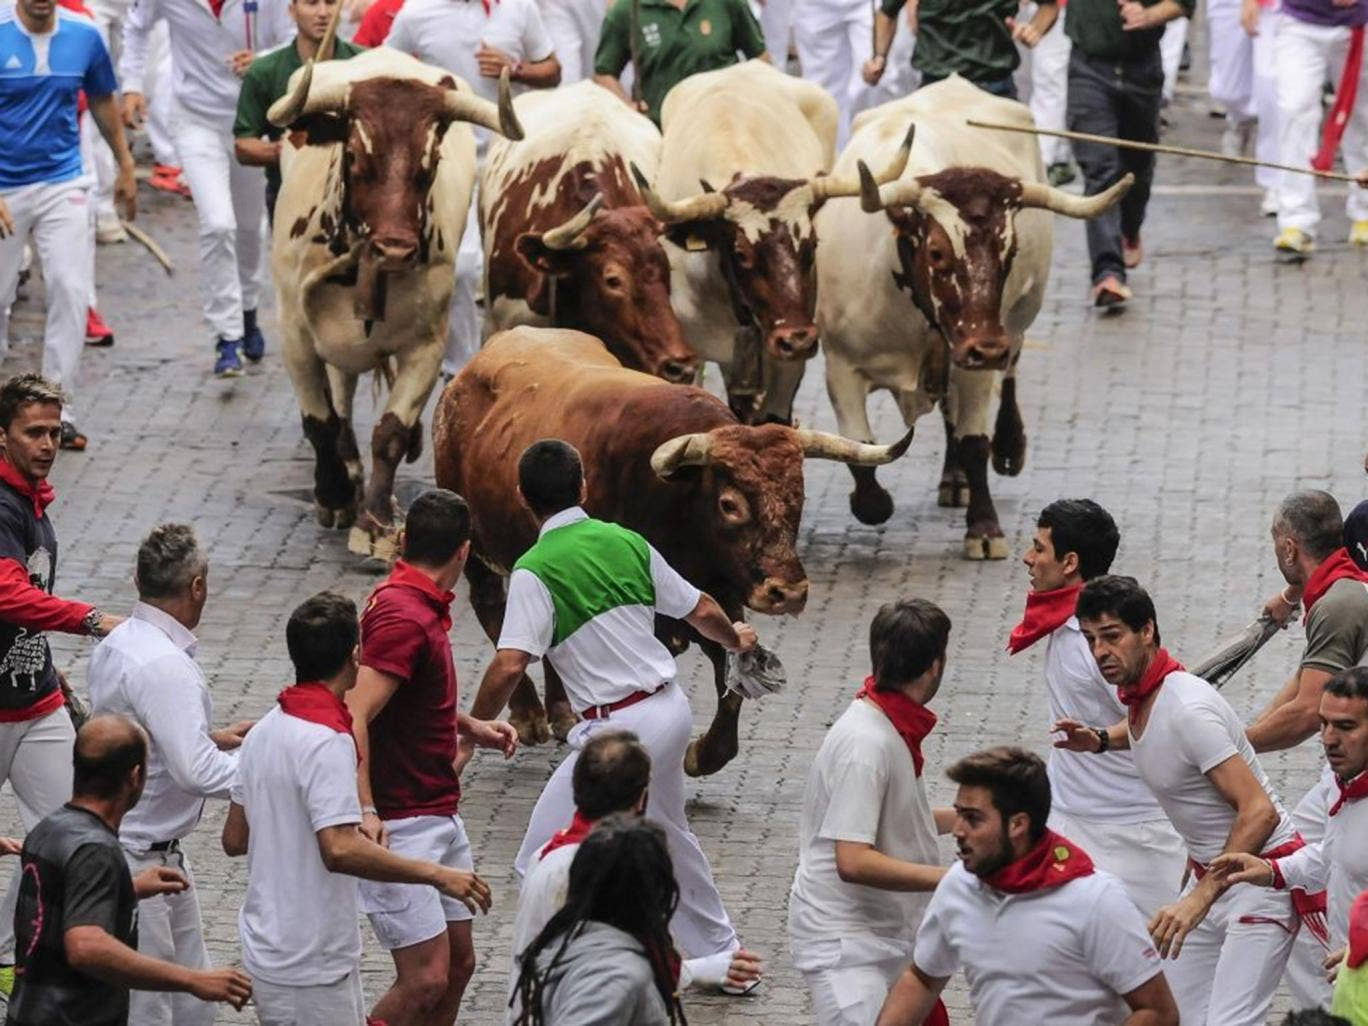 Runners run ahead of a ''Miura''  fighting bull which tossed some runners during the running of the bulls, at the San Fermin festival, in Pamplona, Spain, on Monday, 14 July, 2014